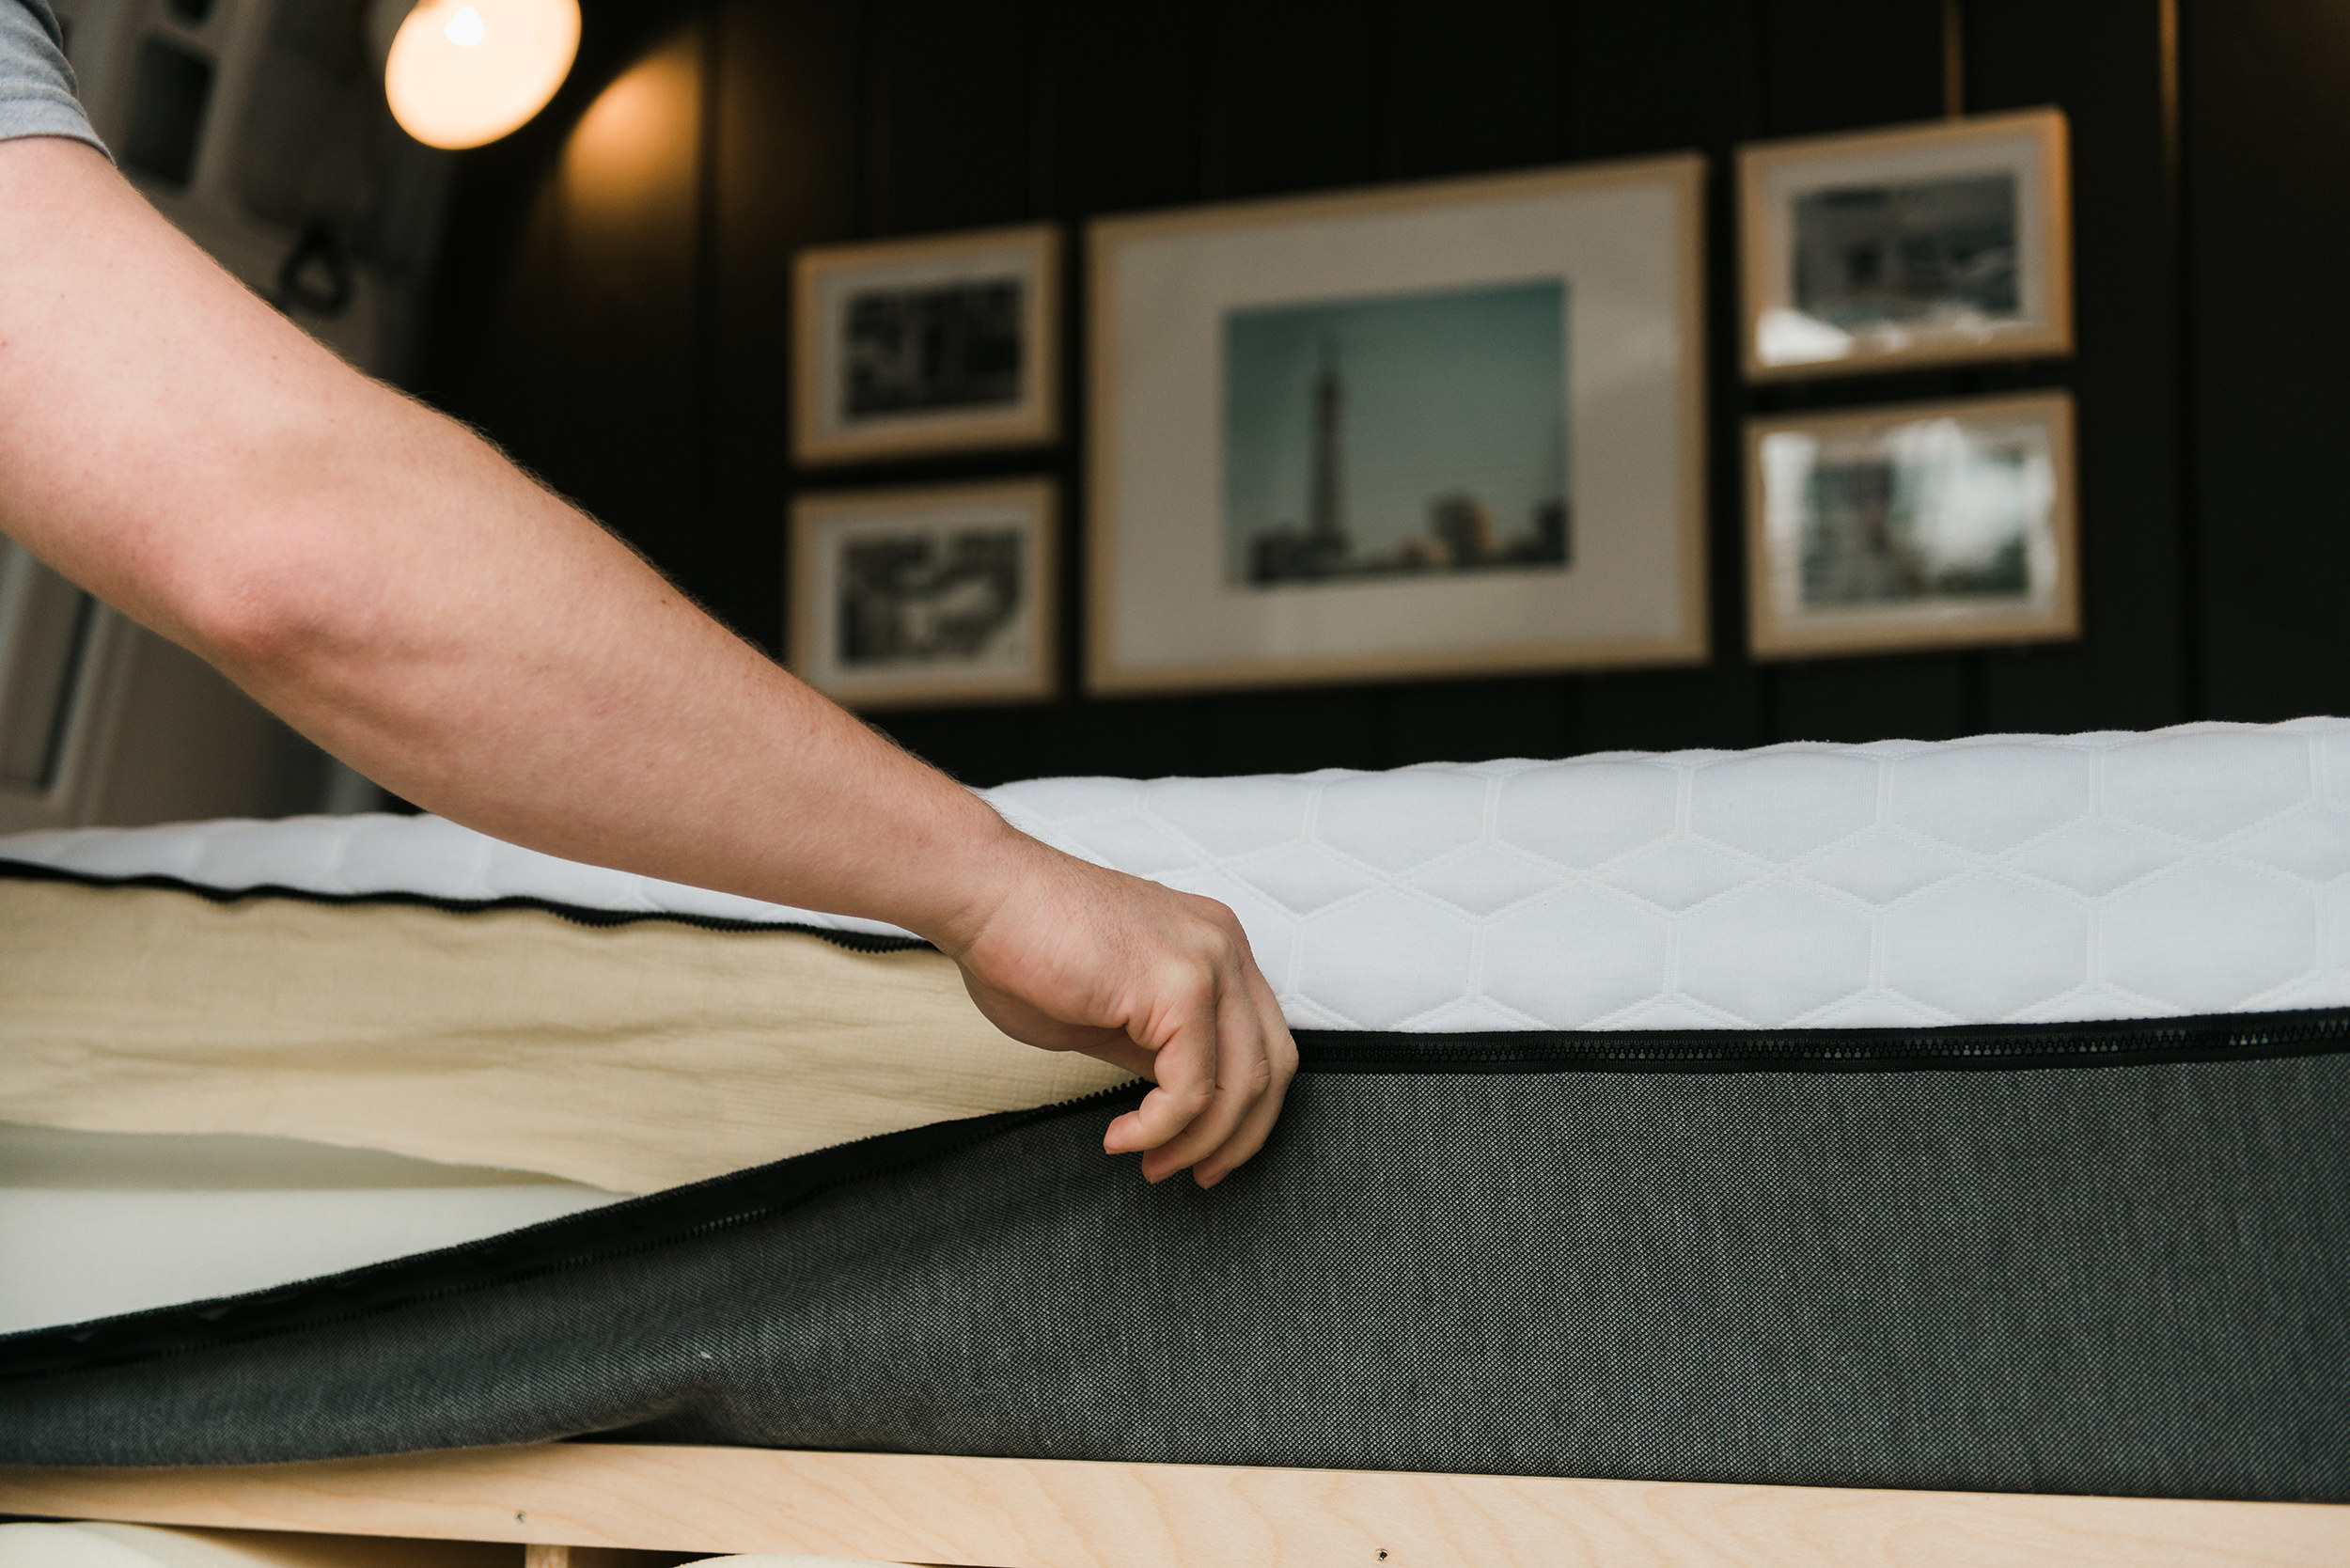 Mattress trials are here to stay. But do they provide any actual benefit to the customer?